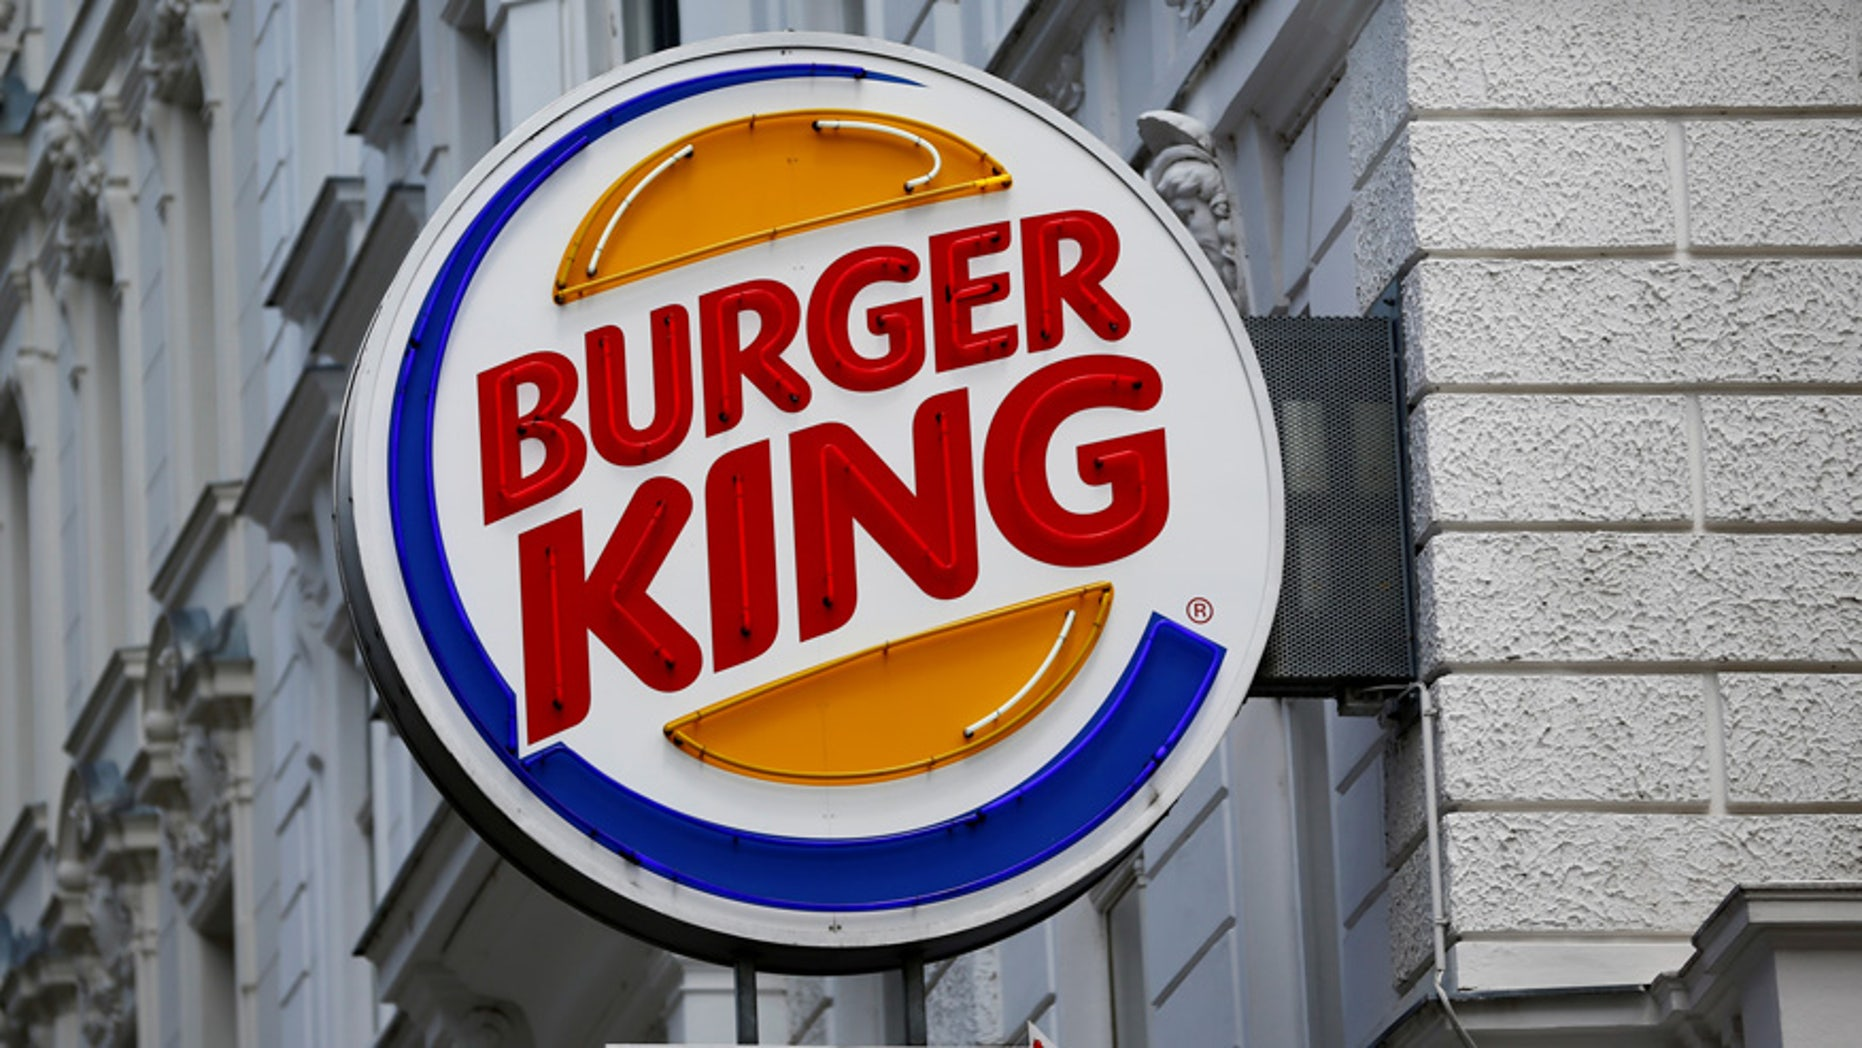 Burger King is pulling off a whopper of a scam, says one Maryland resident.